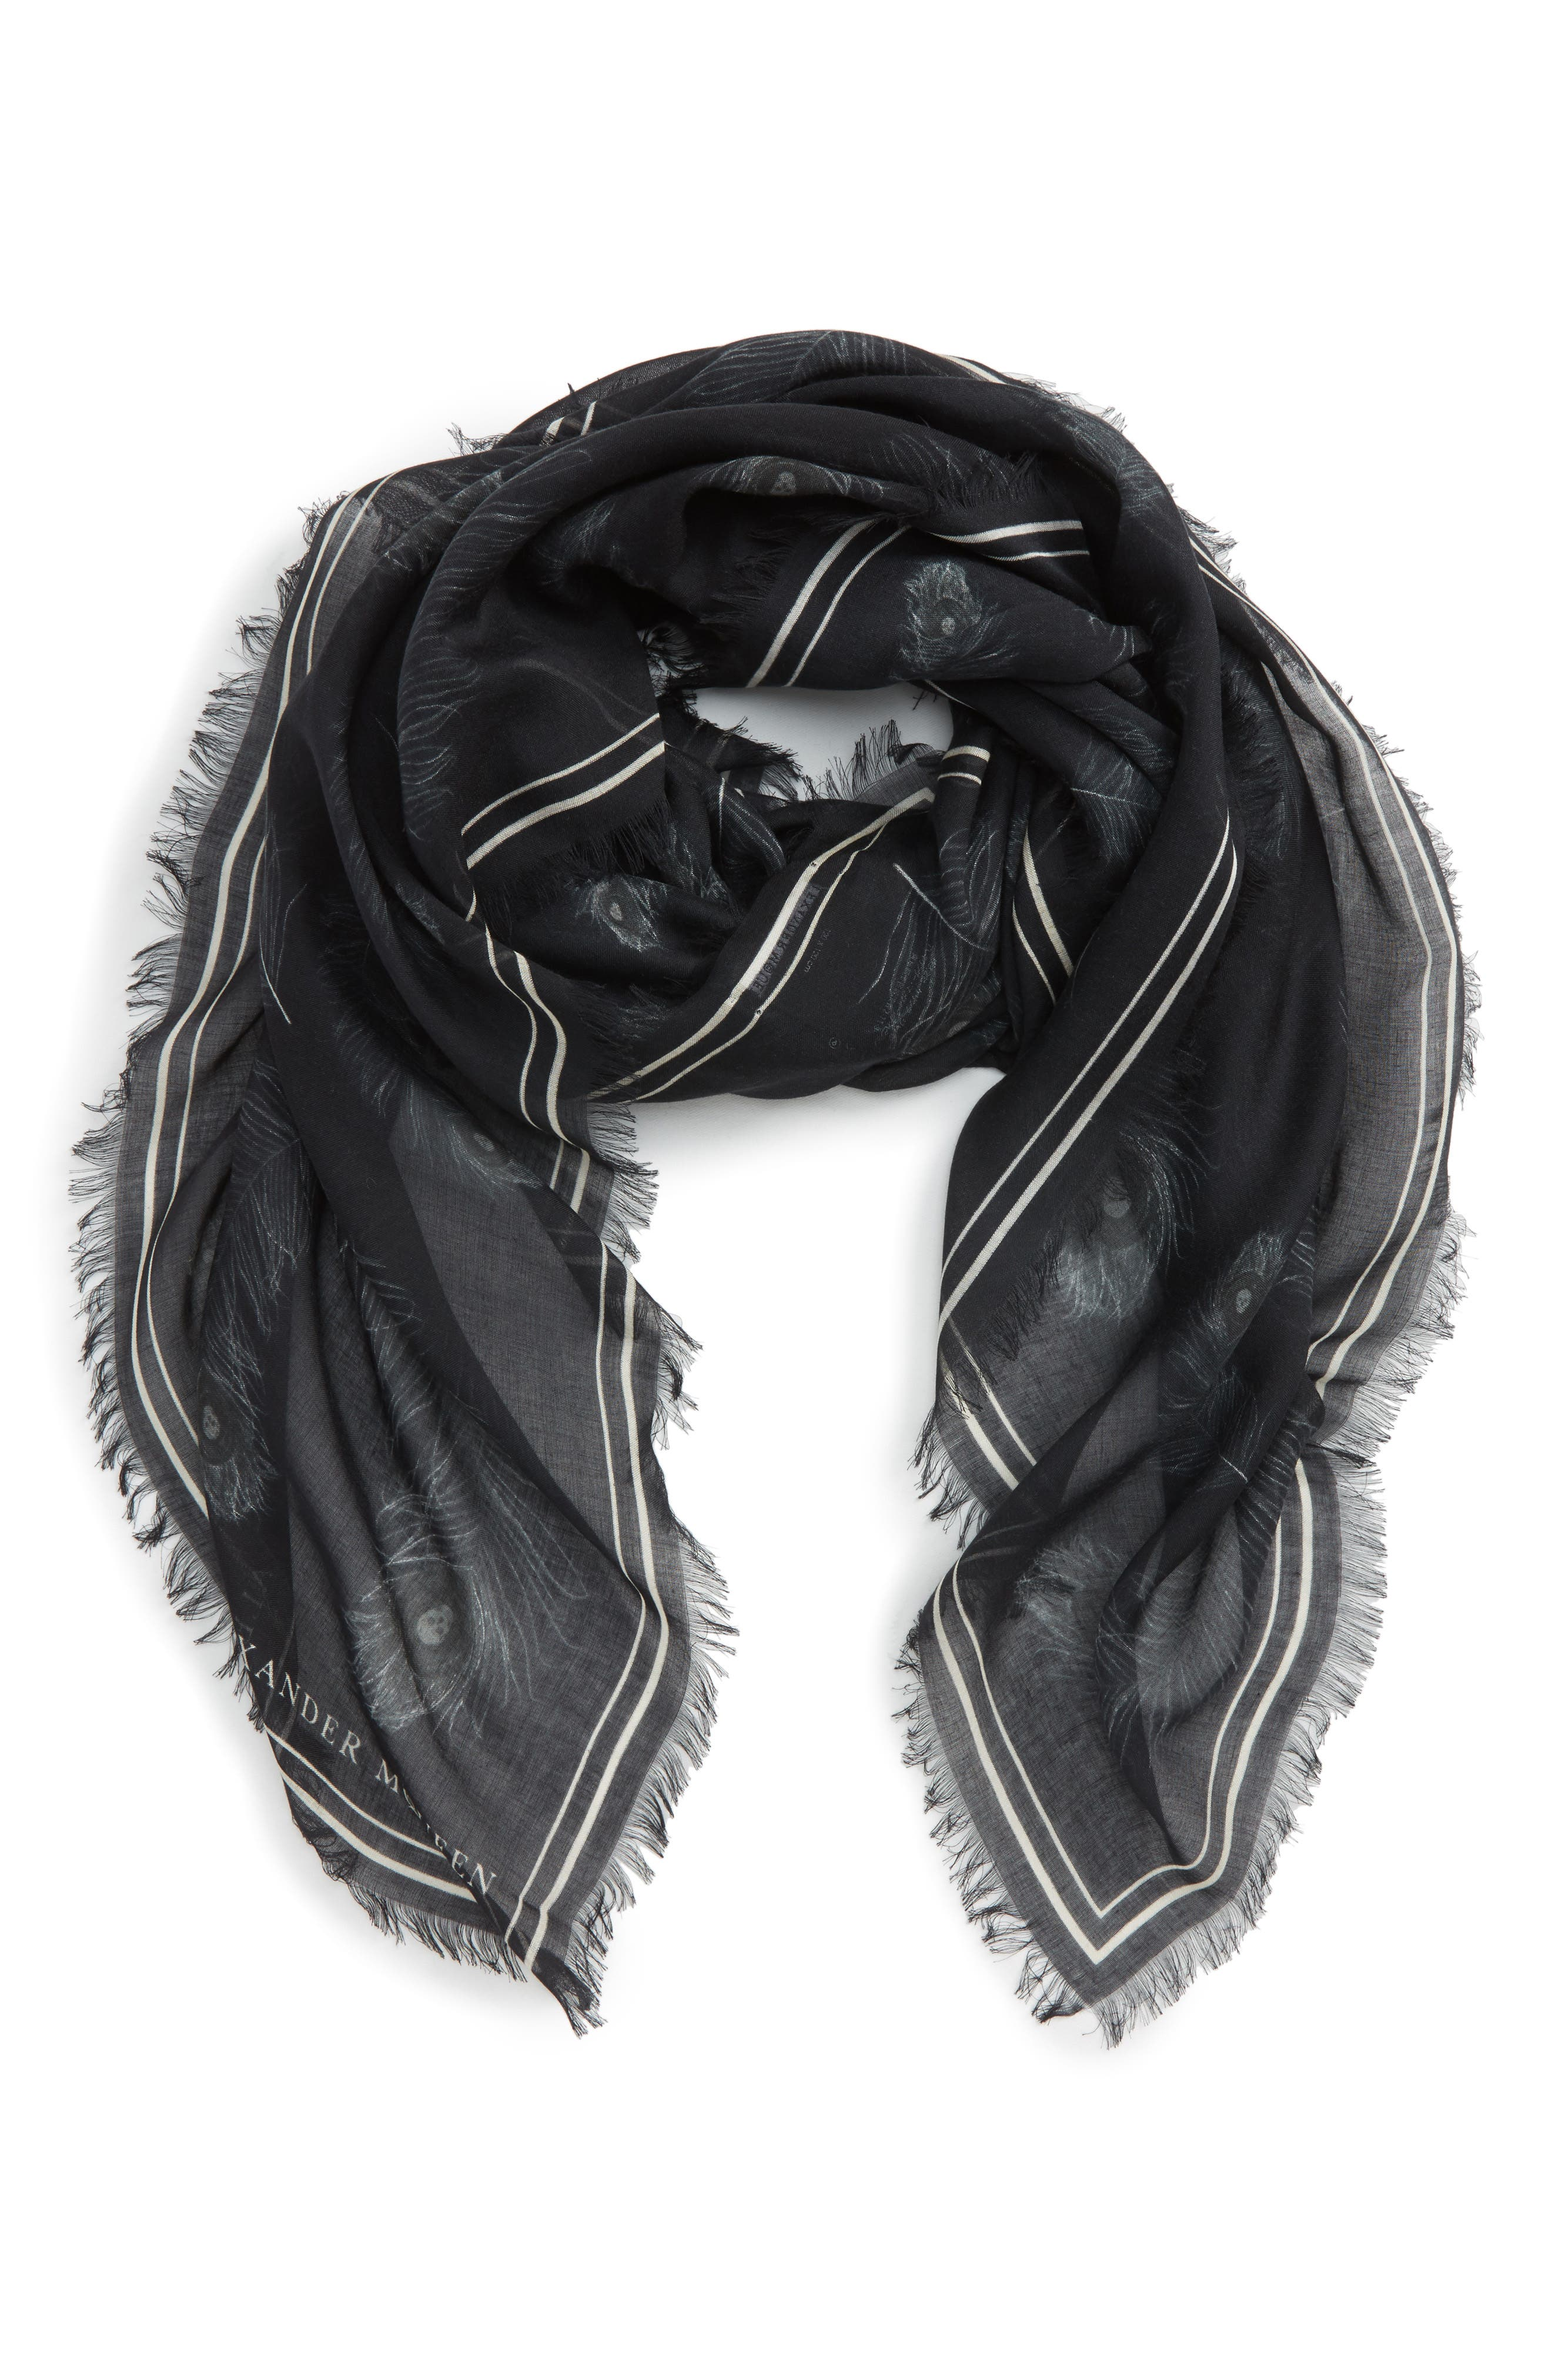 Peacock Feather Skull Scarf,                         Main,                         color, Black/ Ivory